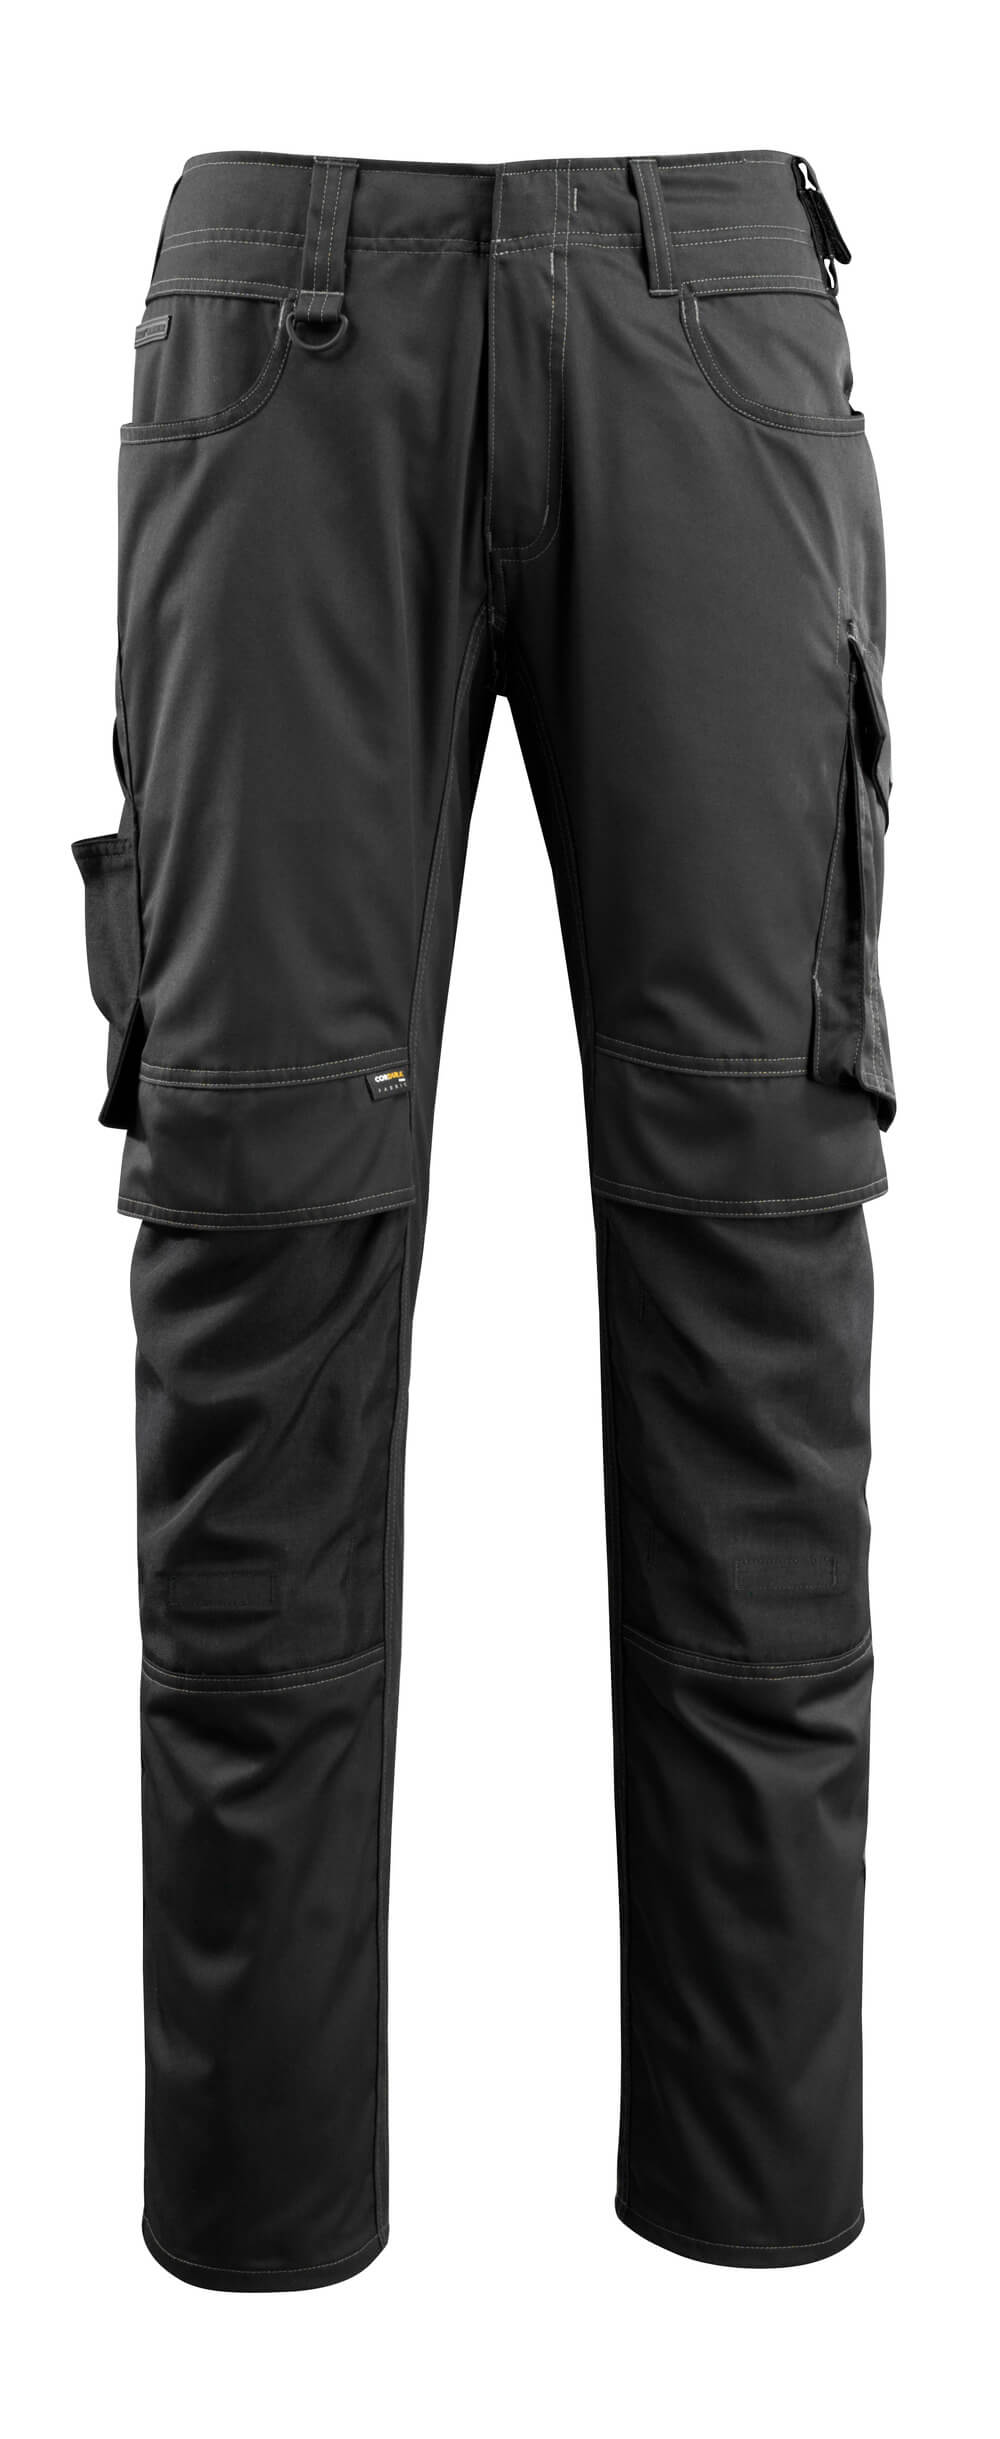 16079-230-09 Pants with kneepad pockets - black